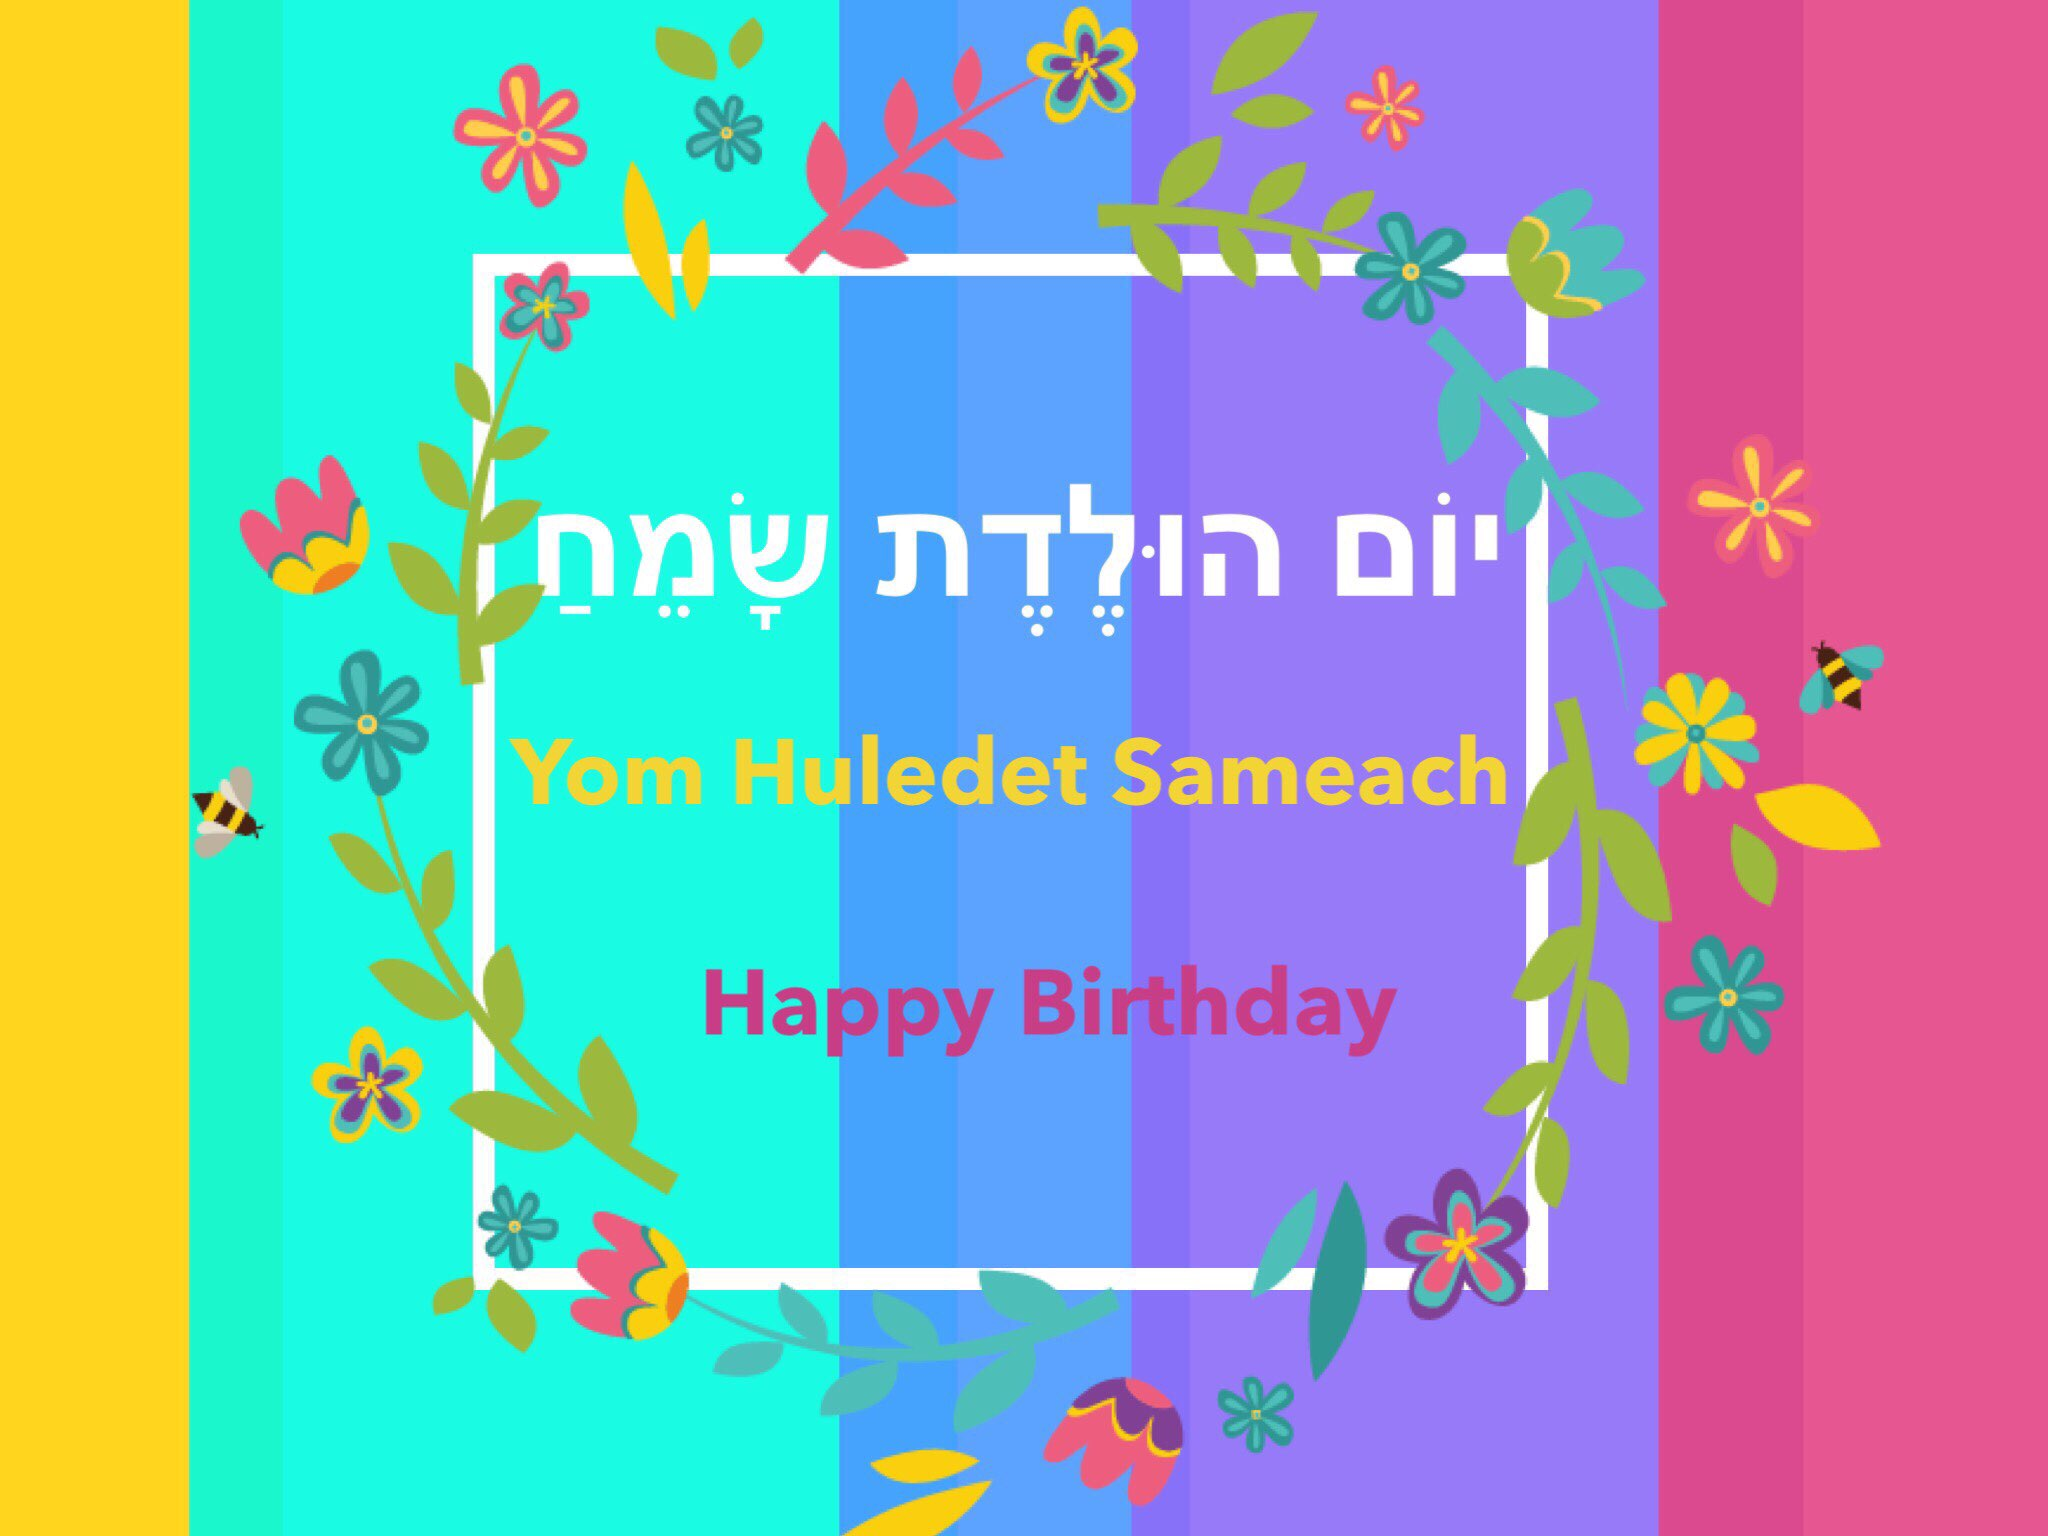 Play unit 1 birthday greetings by yr zegze on ji tap unit 4 how old are you unit 4 how old are you learning how to say how old you are in hebrew numbers 1 10 in hebrew kristyandbryce Images